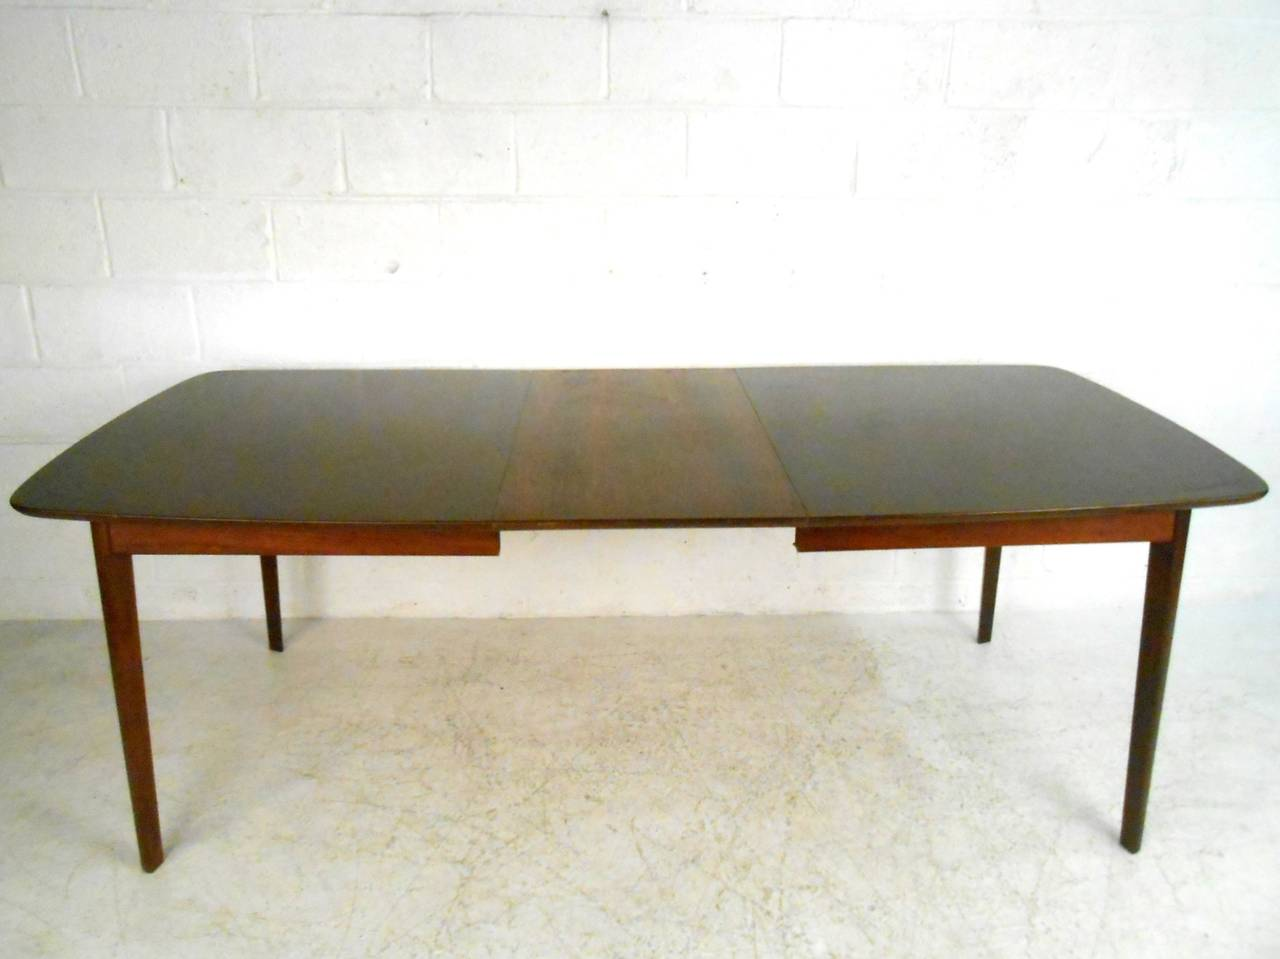 Unique mid century modern dining set table with high back